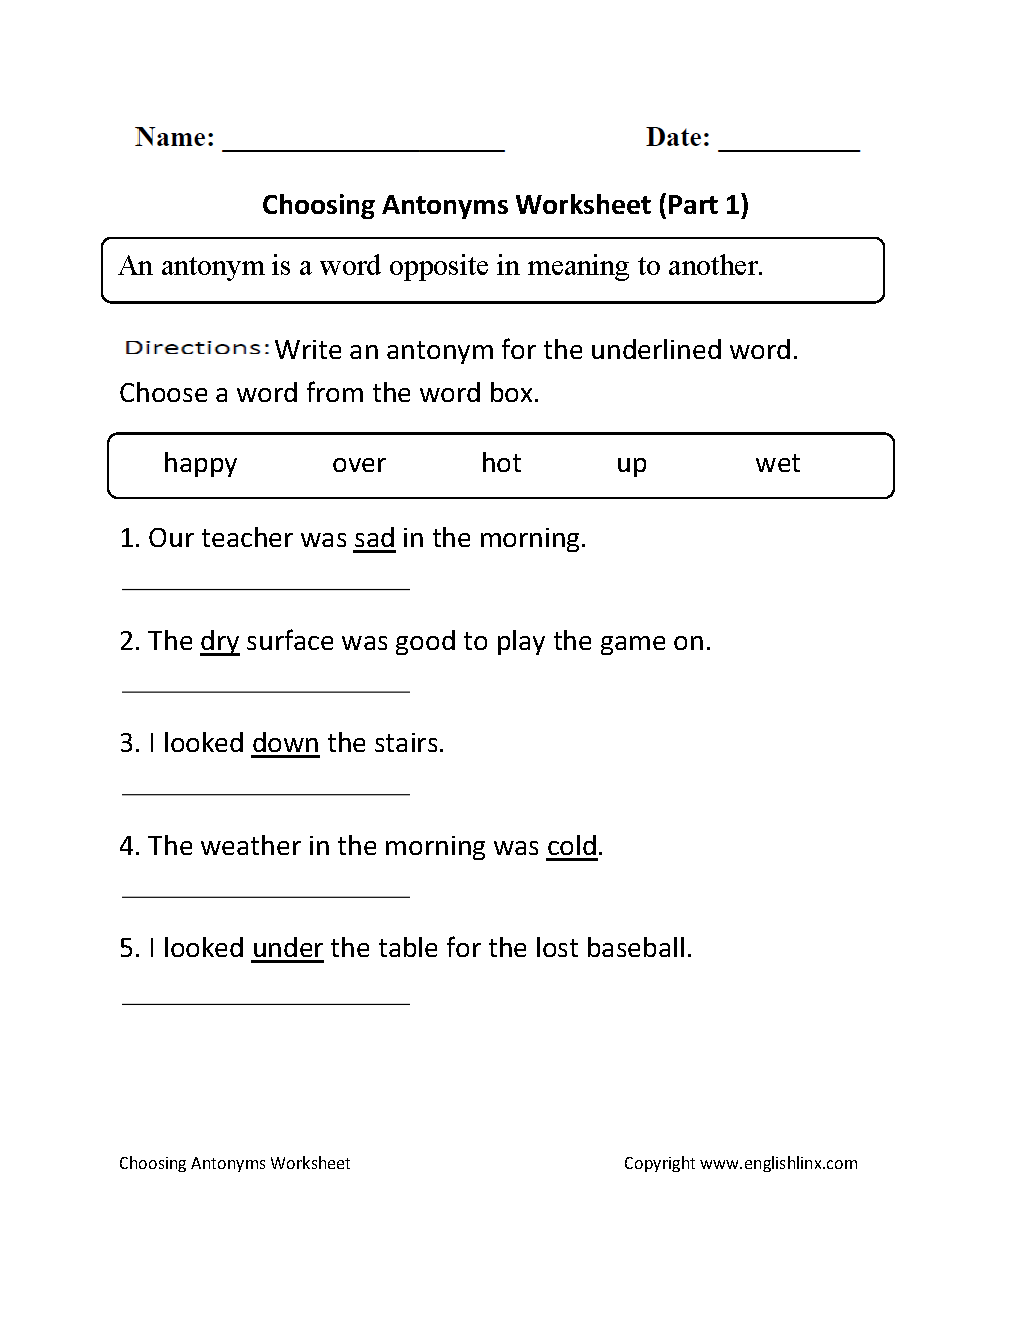 Worksheet Antonyms Activities For 2nd Grade englishlinx com antonyms worksheets choosing part 1